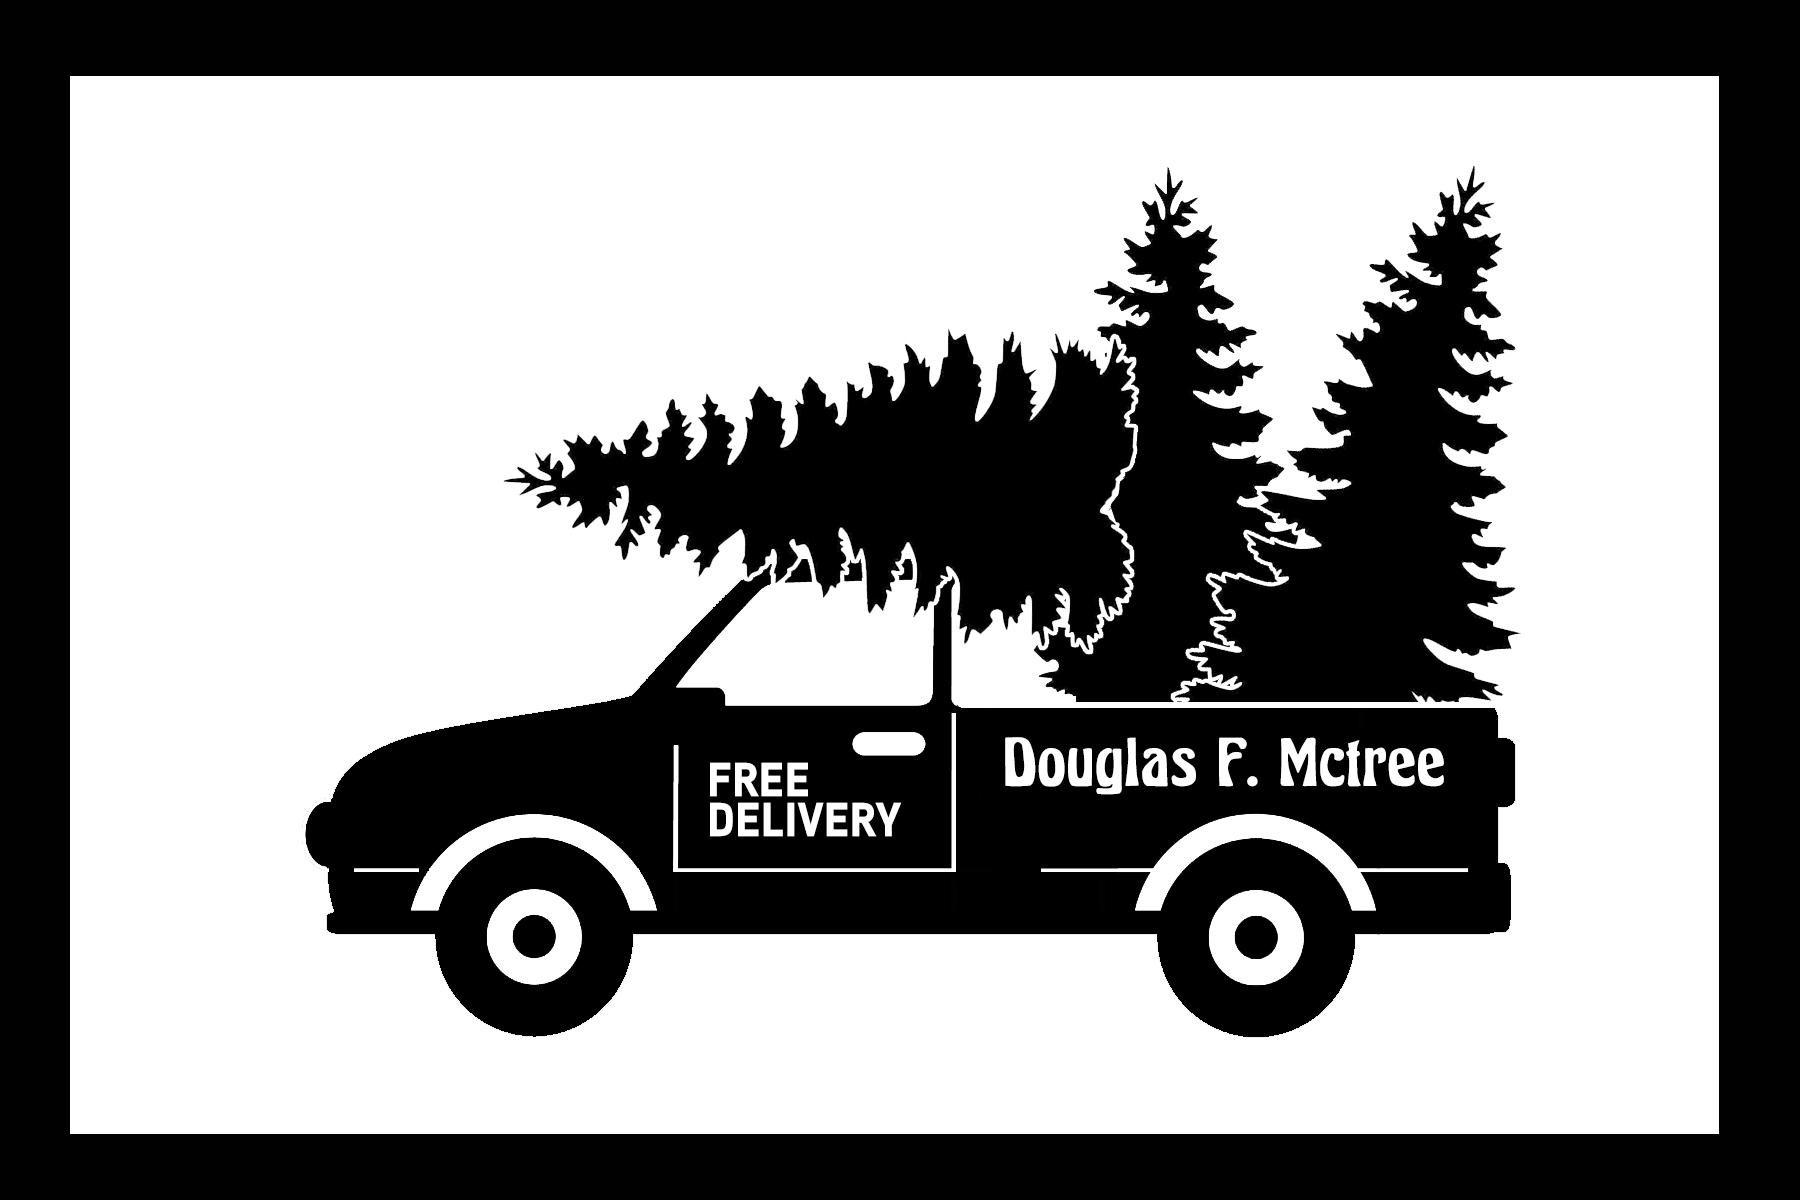 Free Fir Tree Delivery Truck SVG File